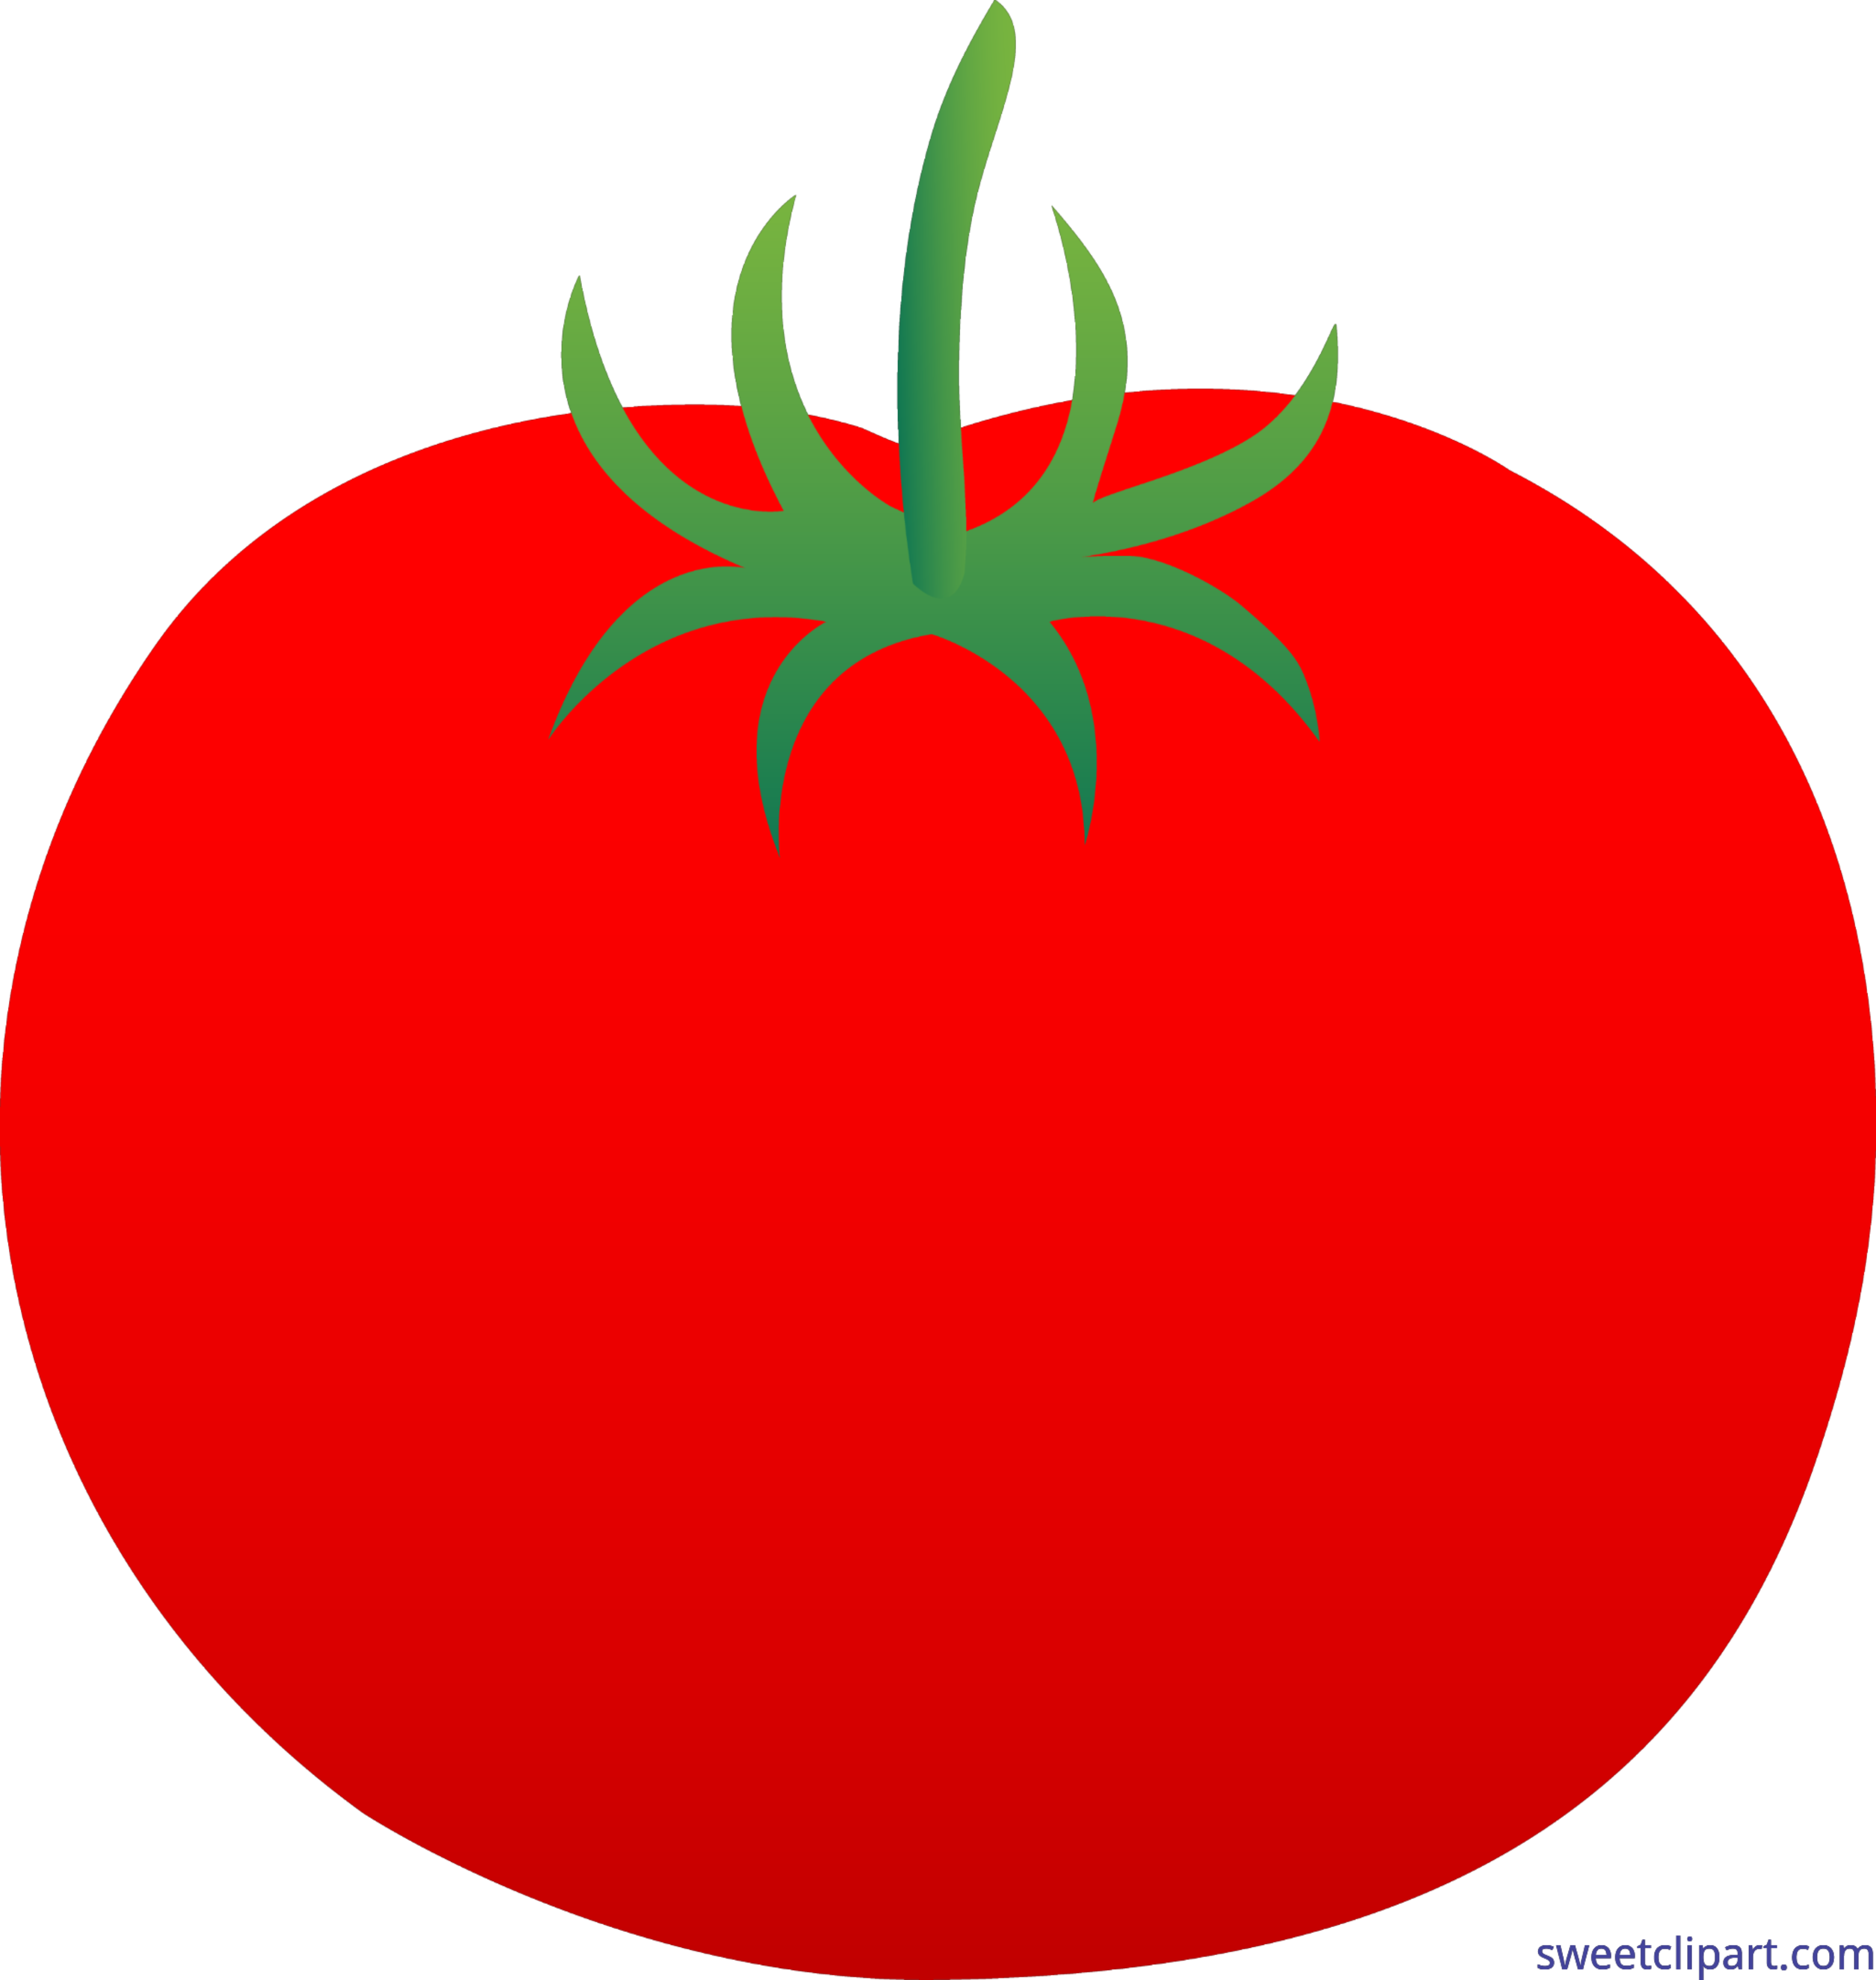 Red tomato clip art. Tomatoes clipart healthy food